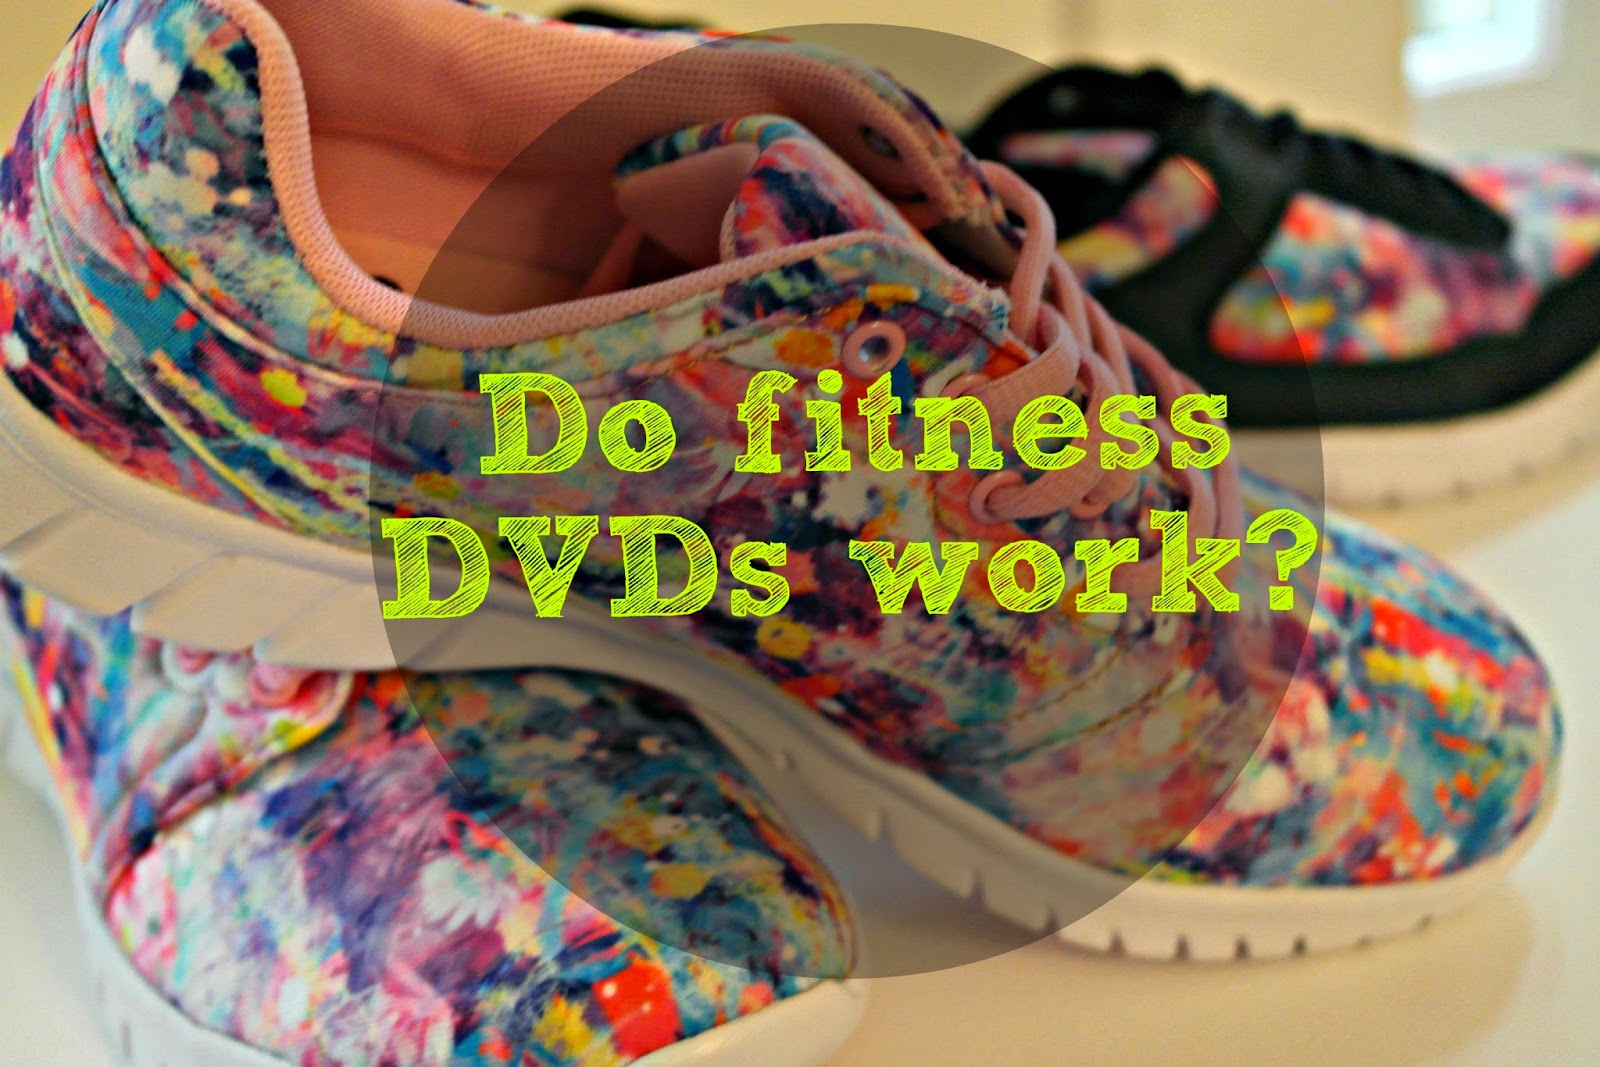 do fitness dvds work